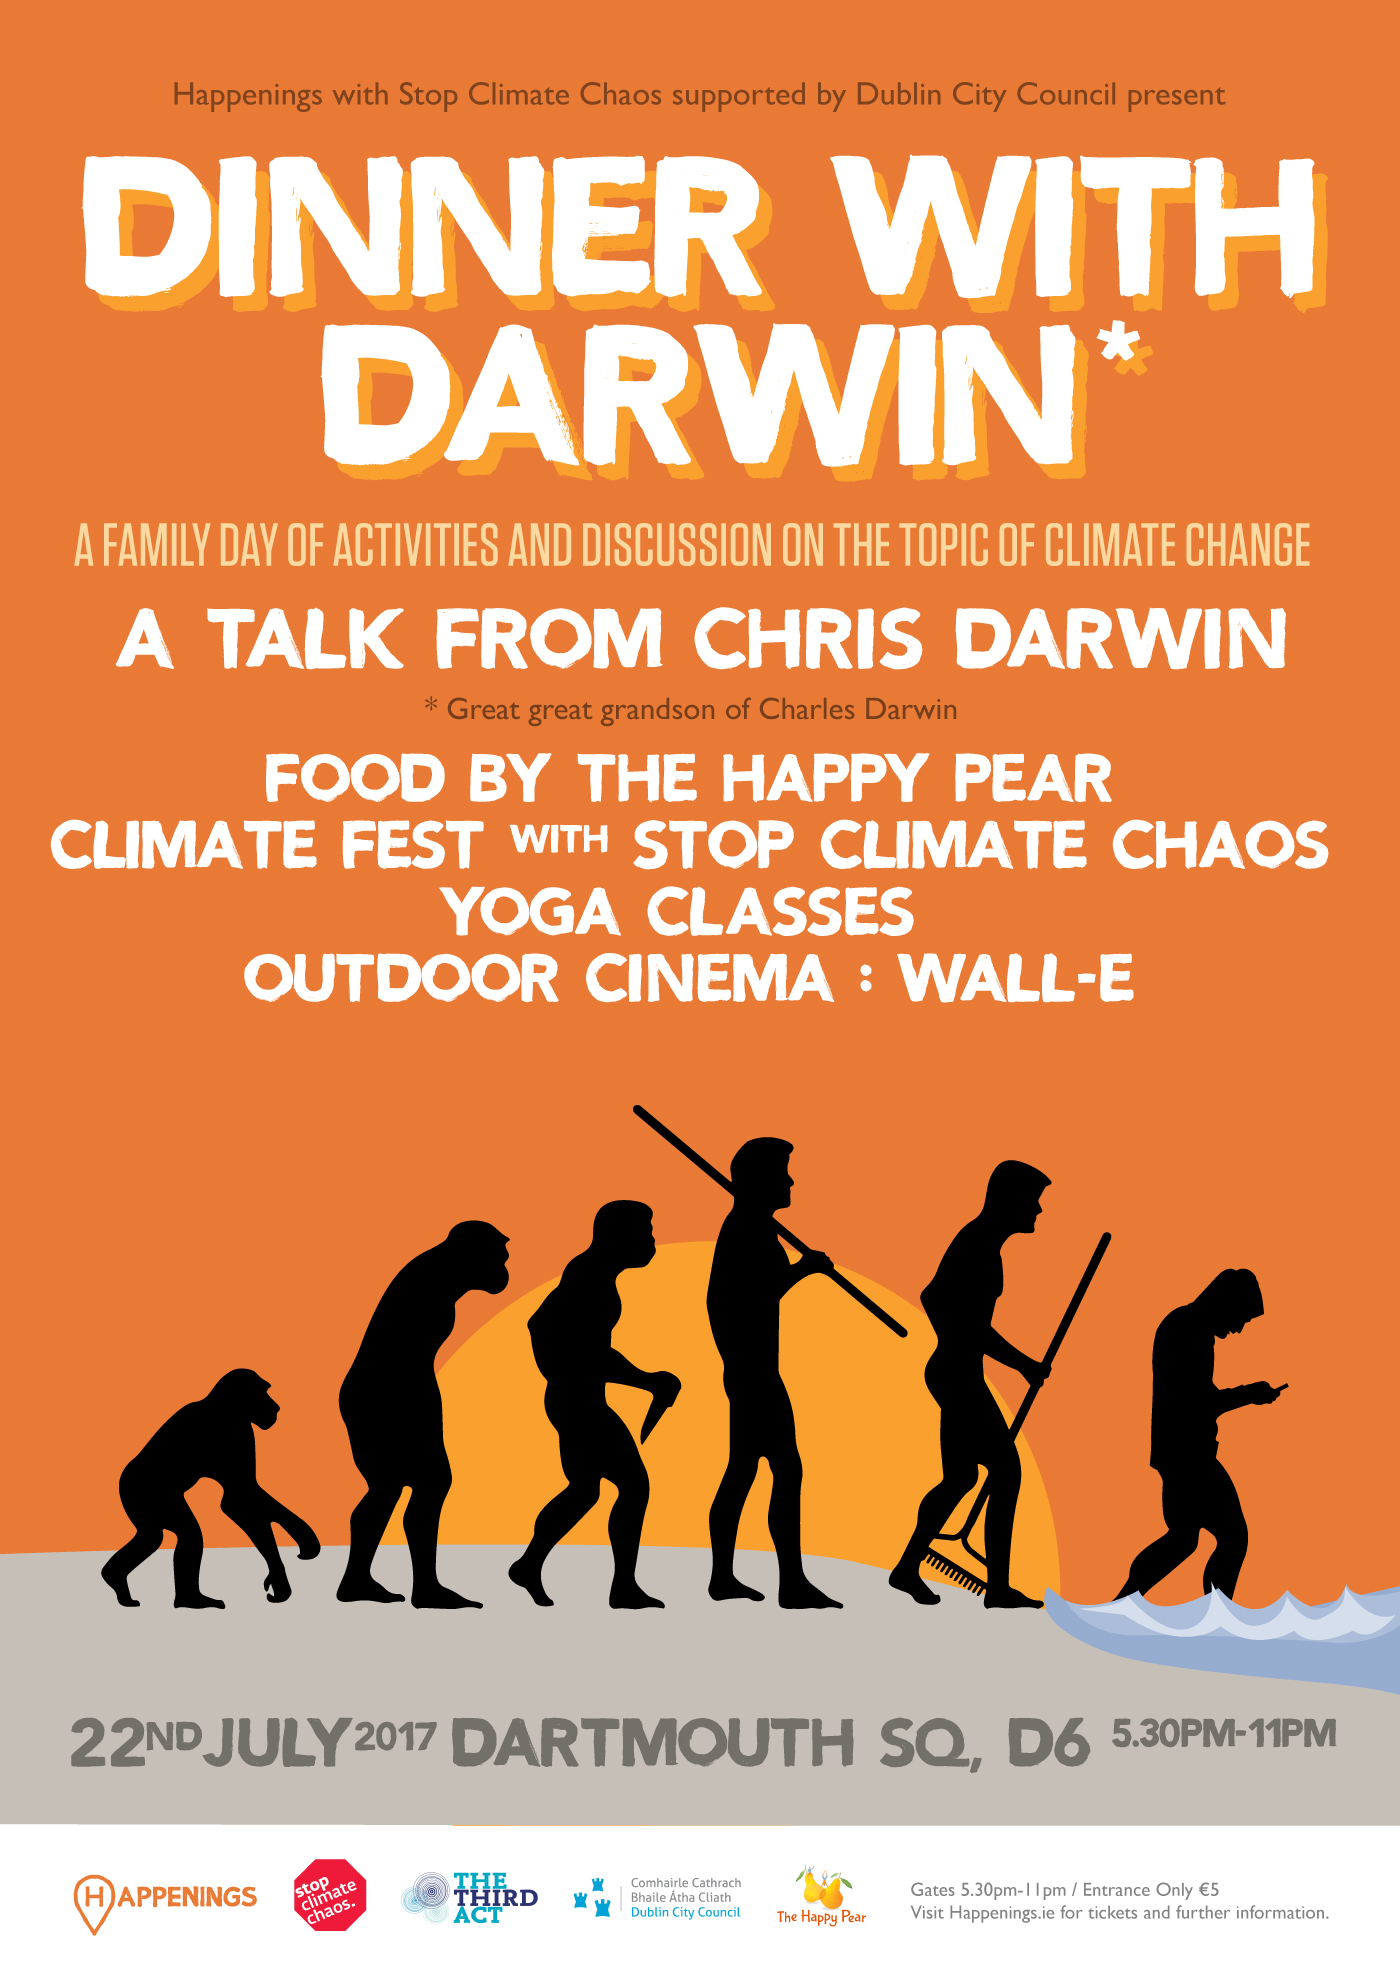 Happenings dinnerwithdarwin web 4 %281%29